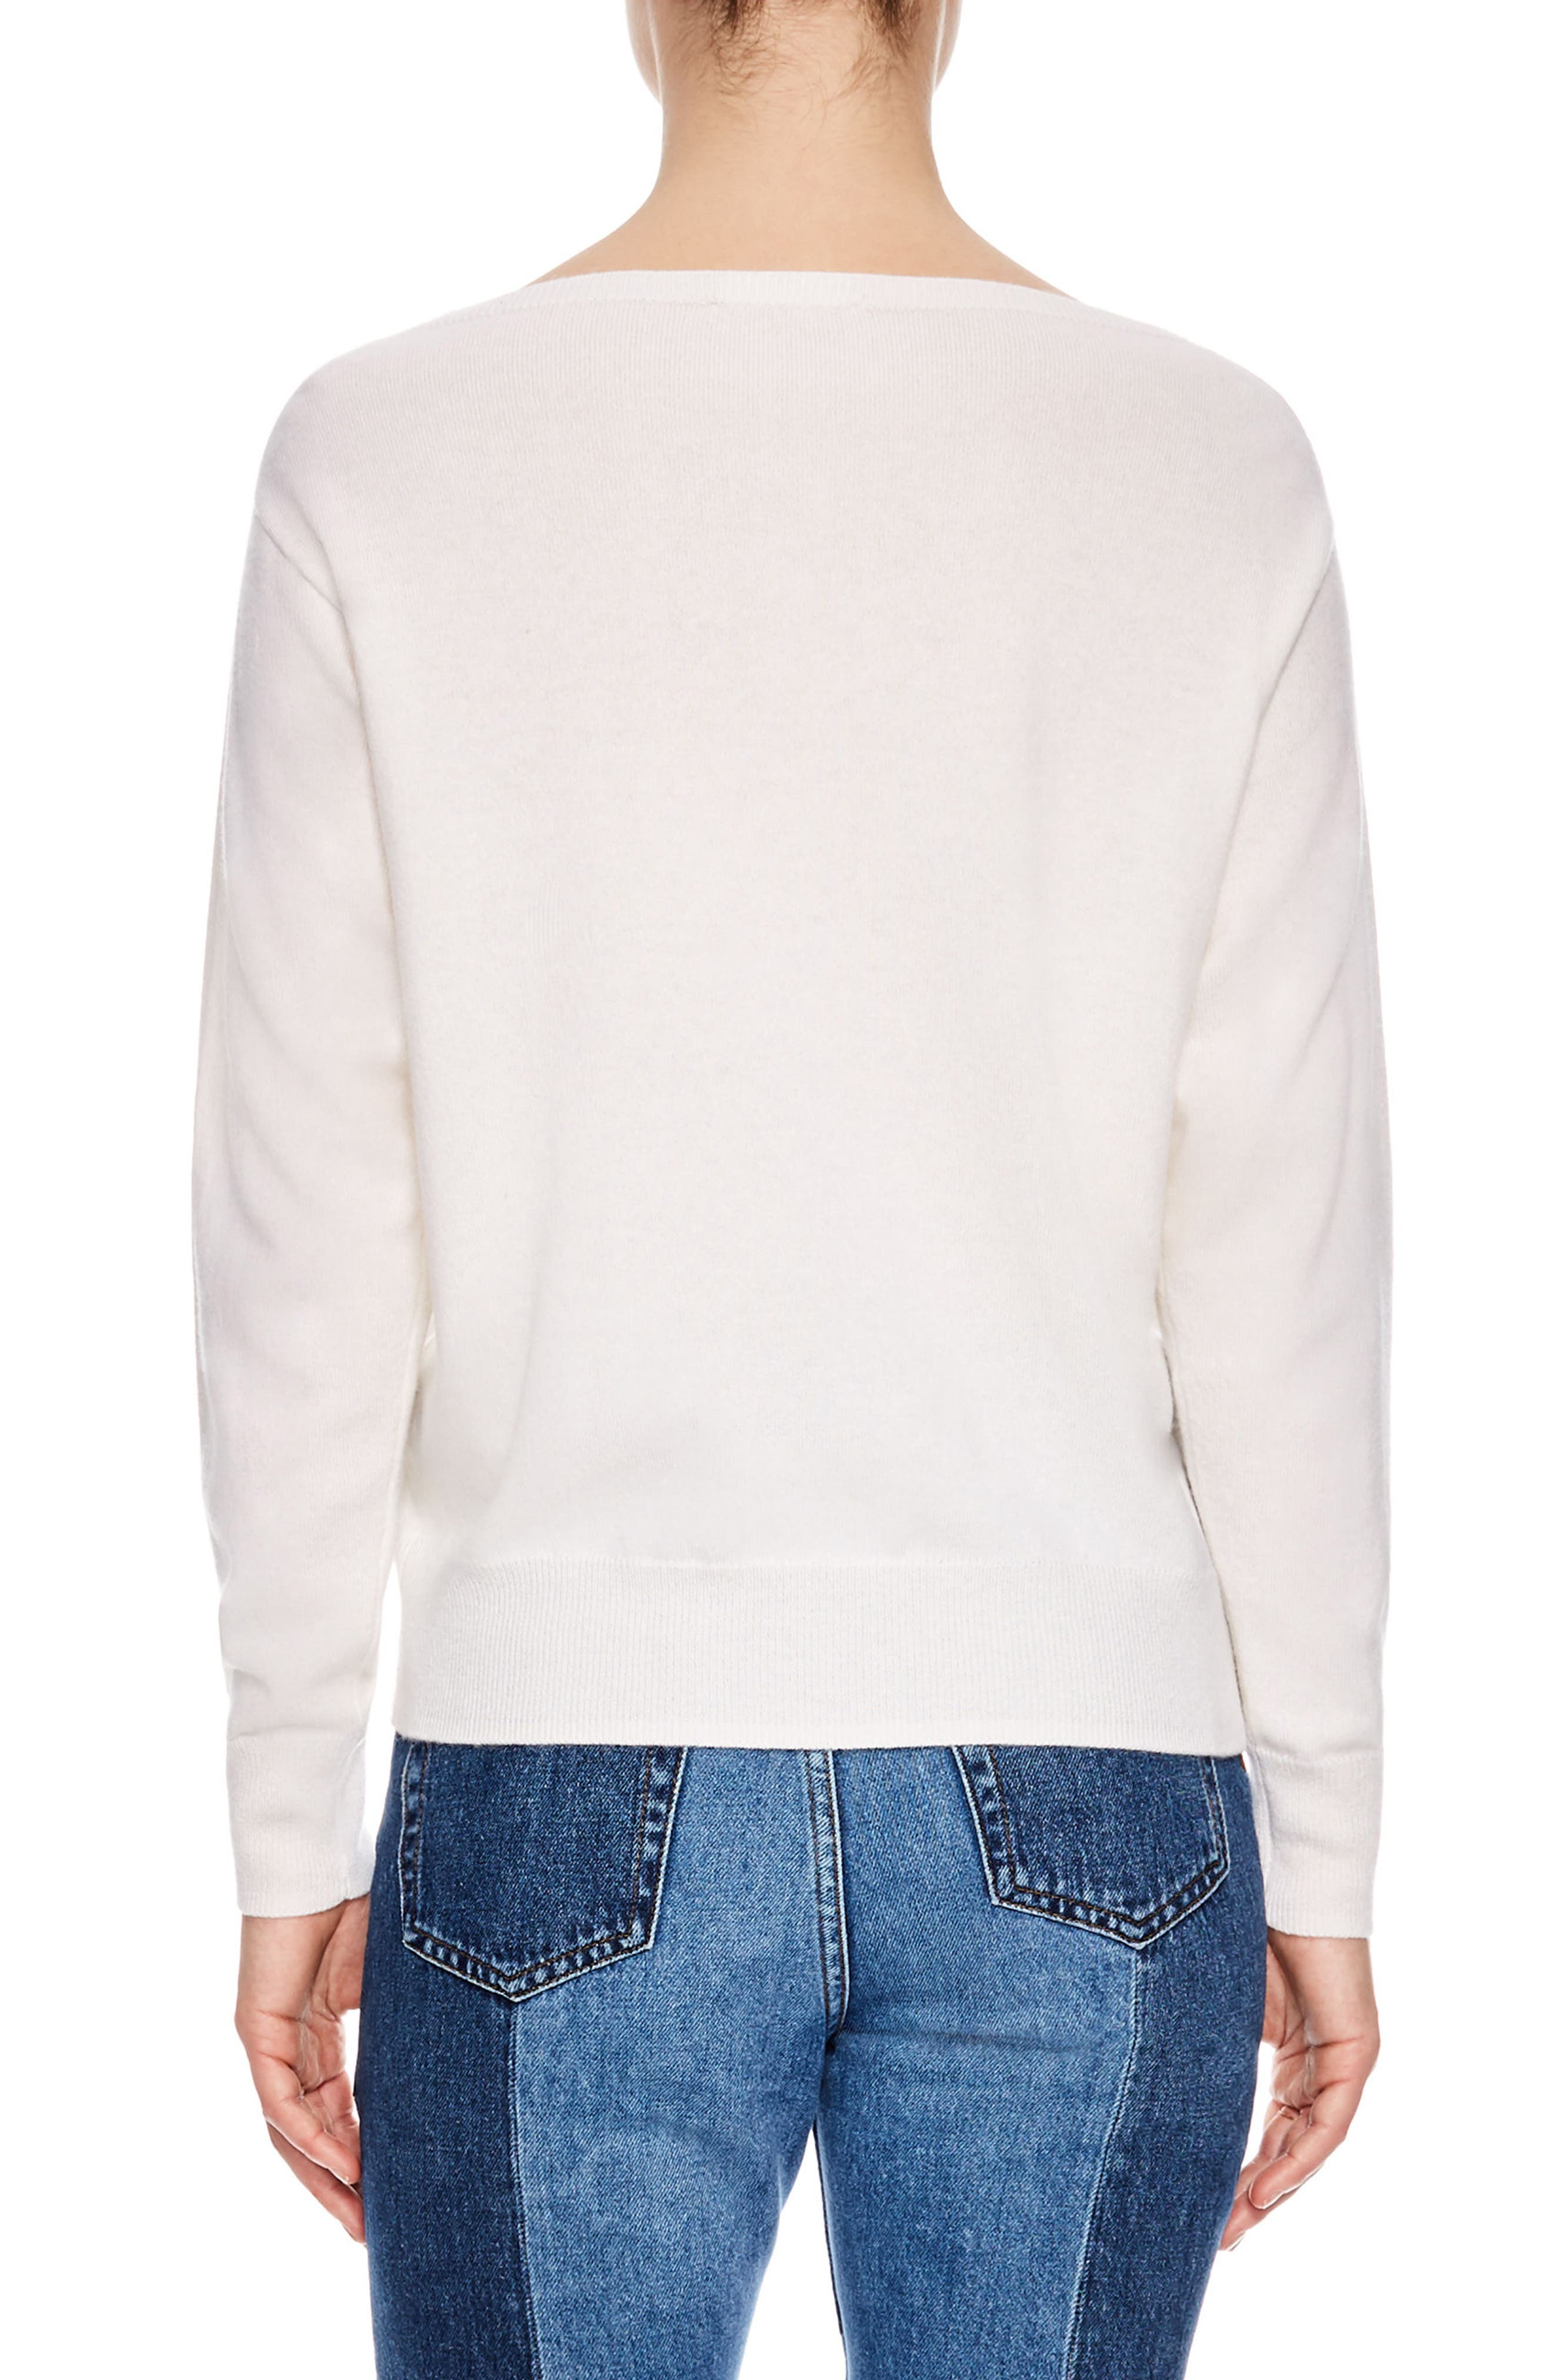 Keyhole Wool & Cashmere Sweater,                             Alternate thumbnail 2, color,                             100